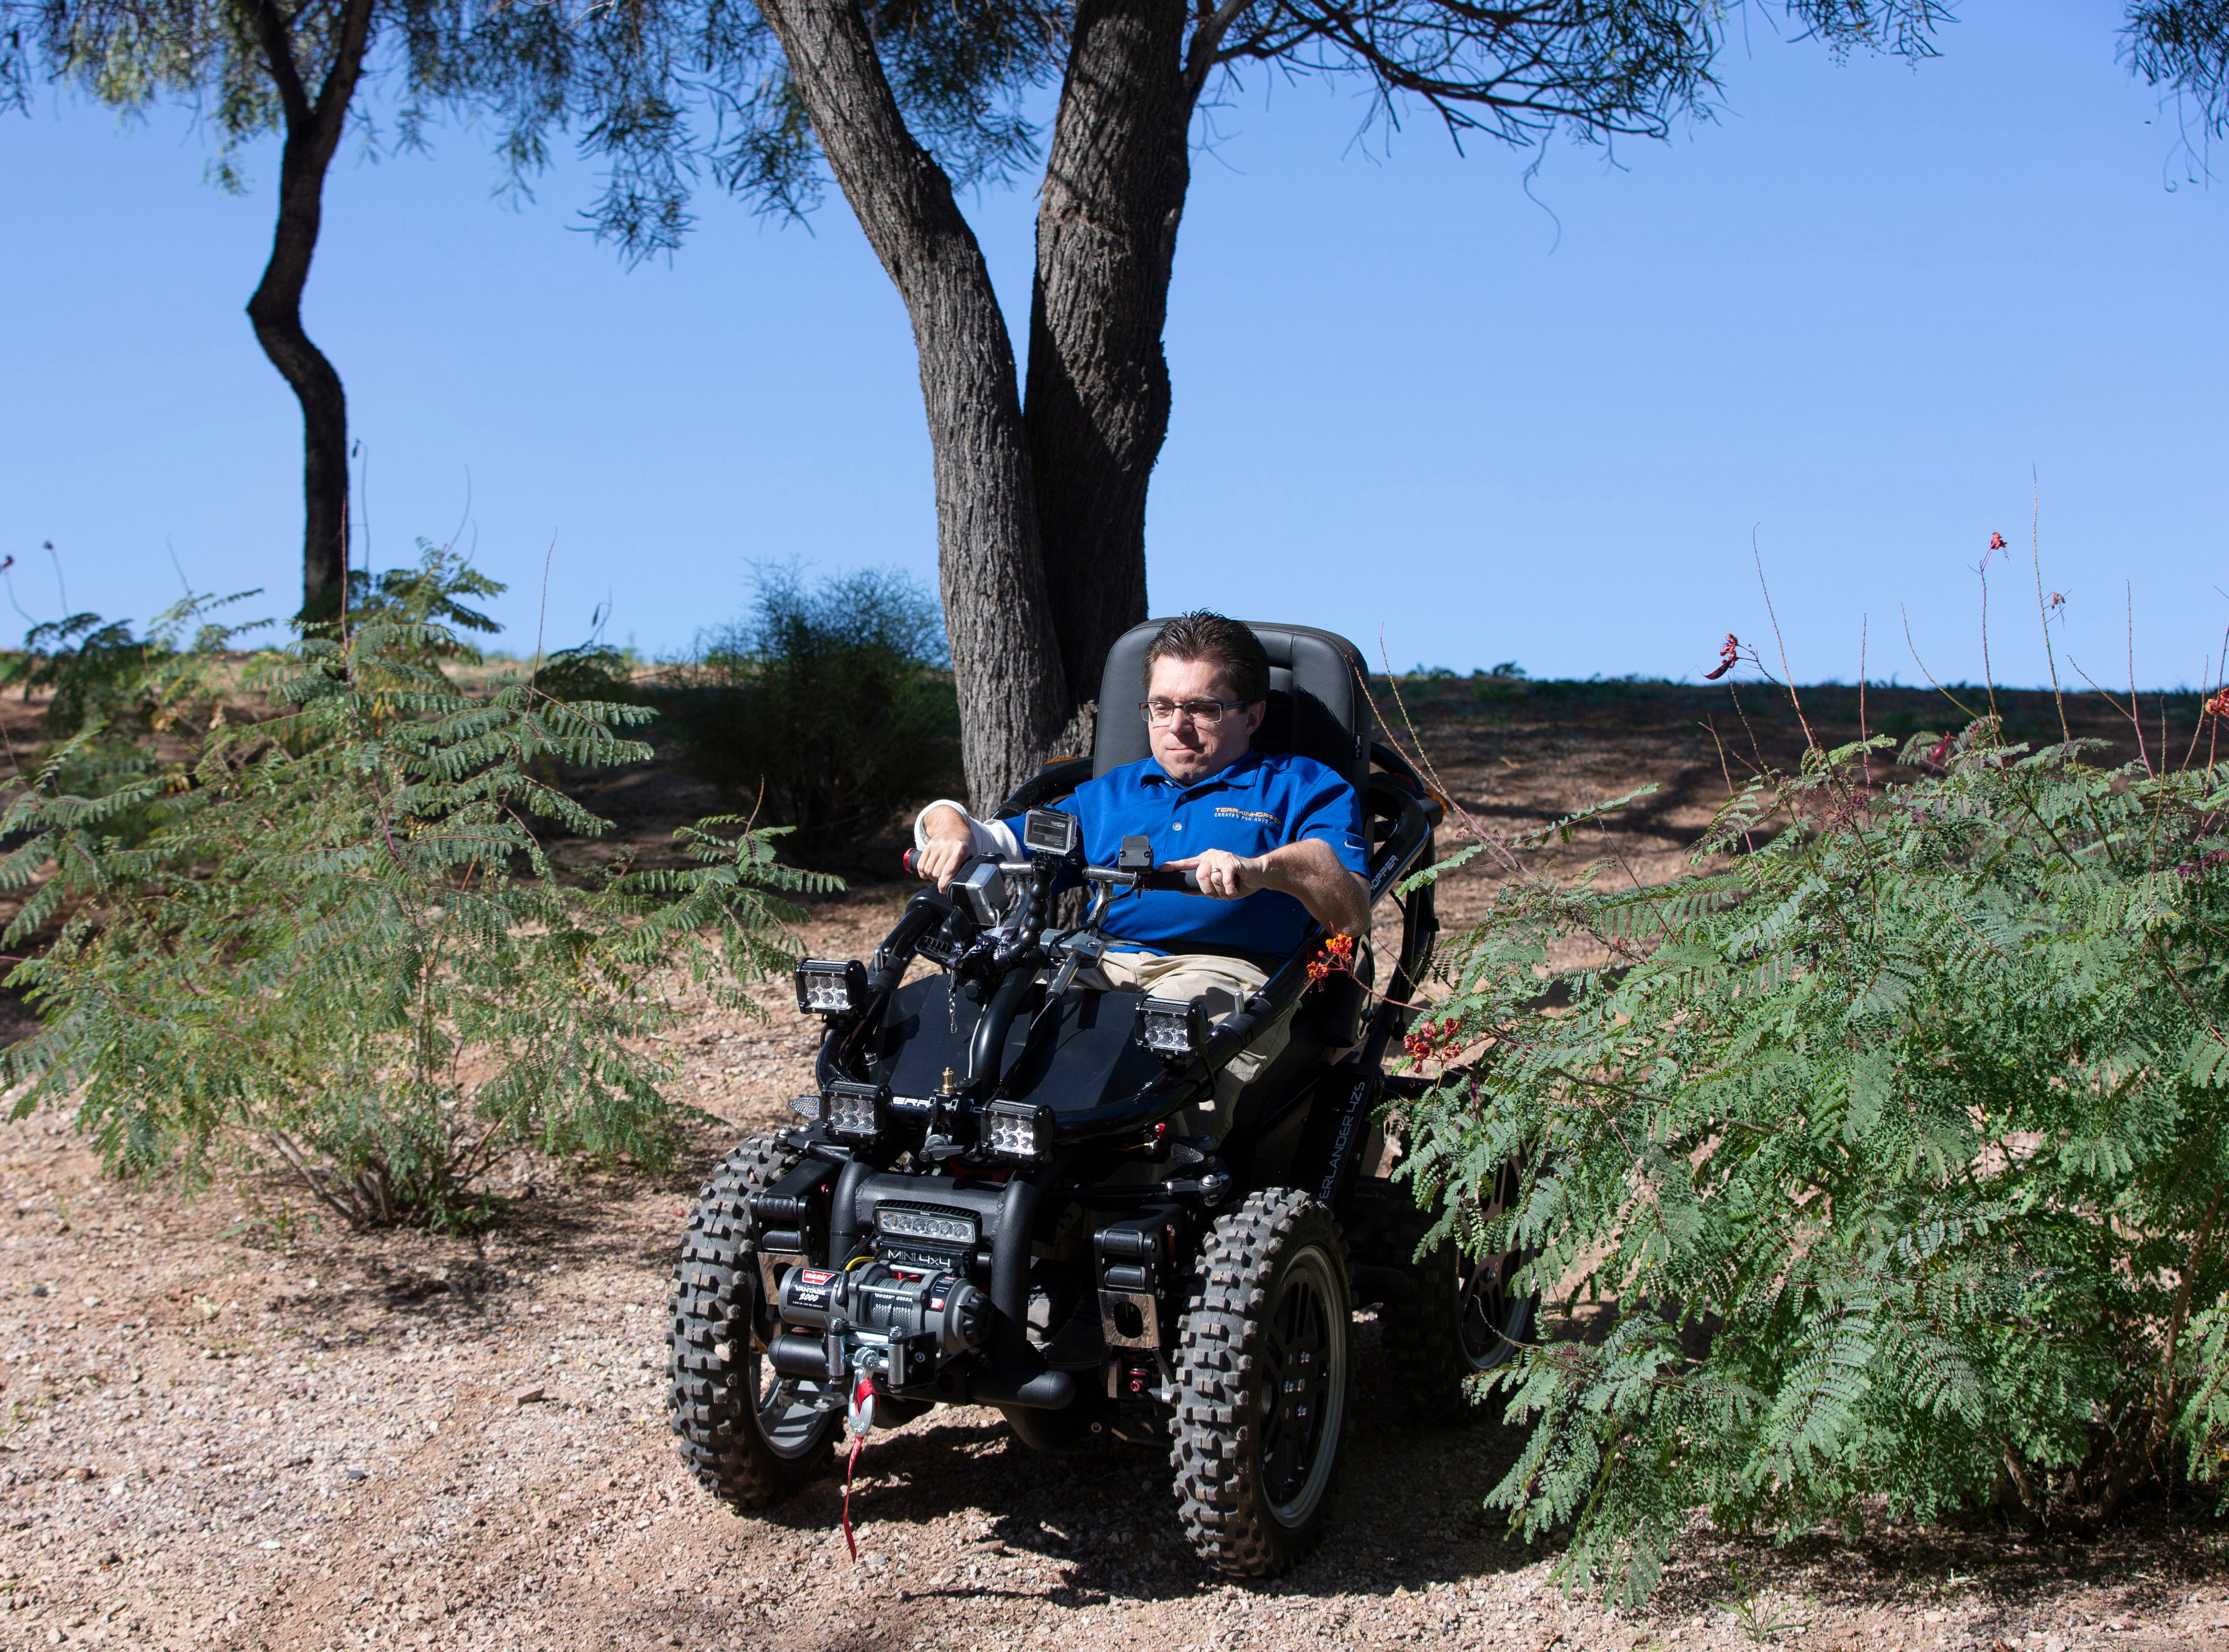 Todd Lemay, owner of TerrainHopper USA in Tempe, demonstrates how the all-terrain vehicle works. Cost starts at $18,000 and go up depending on options like controls, extended-life batteries, USB ports and, of course, cup holders.